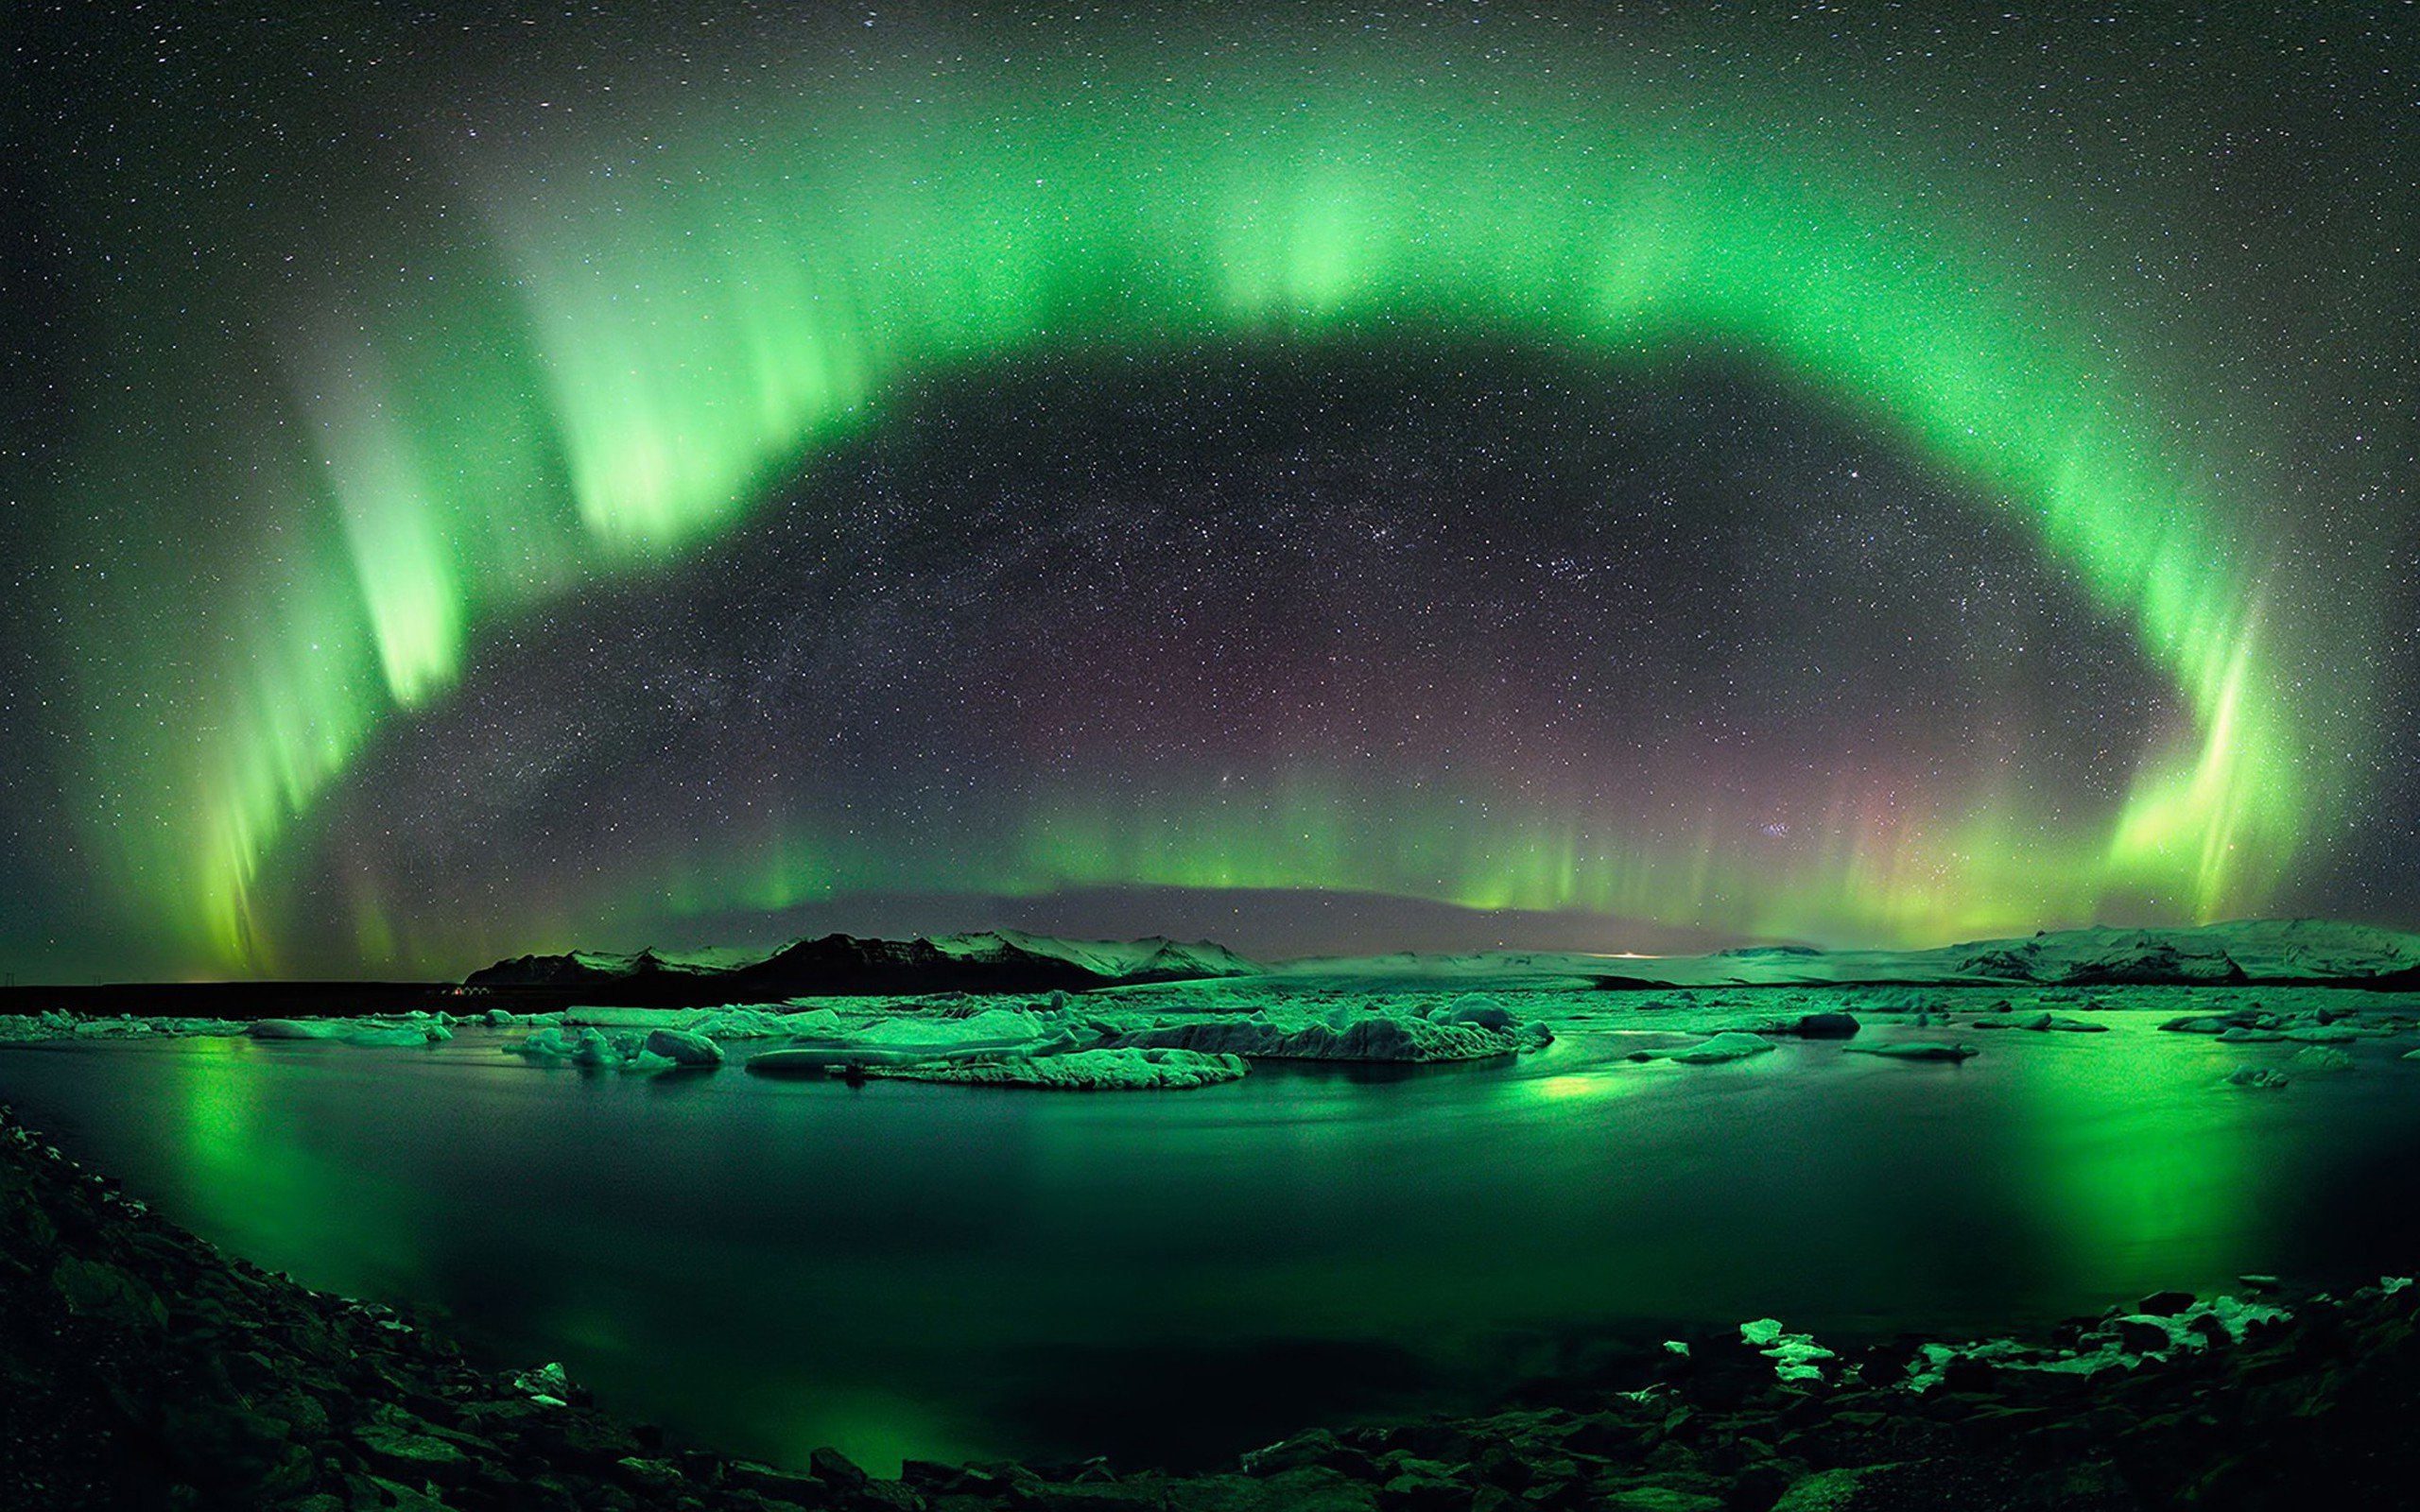 4k Wallpaper 3d National Geographic Nature Landscape Aurora Vetter Iceland Green